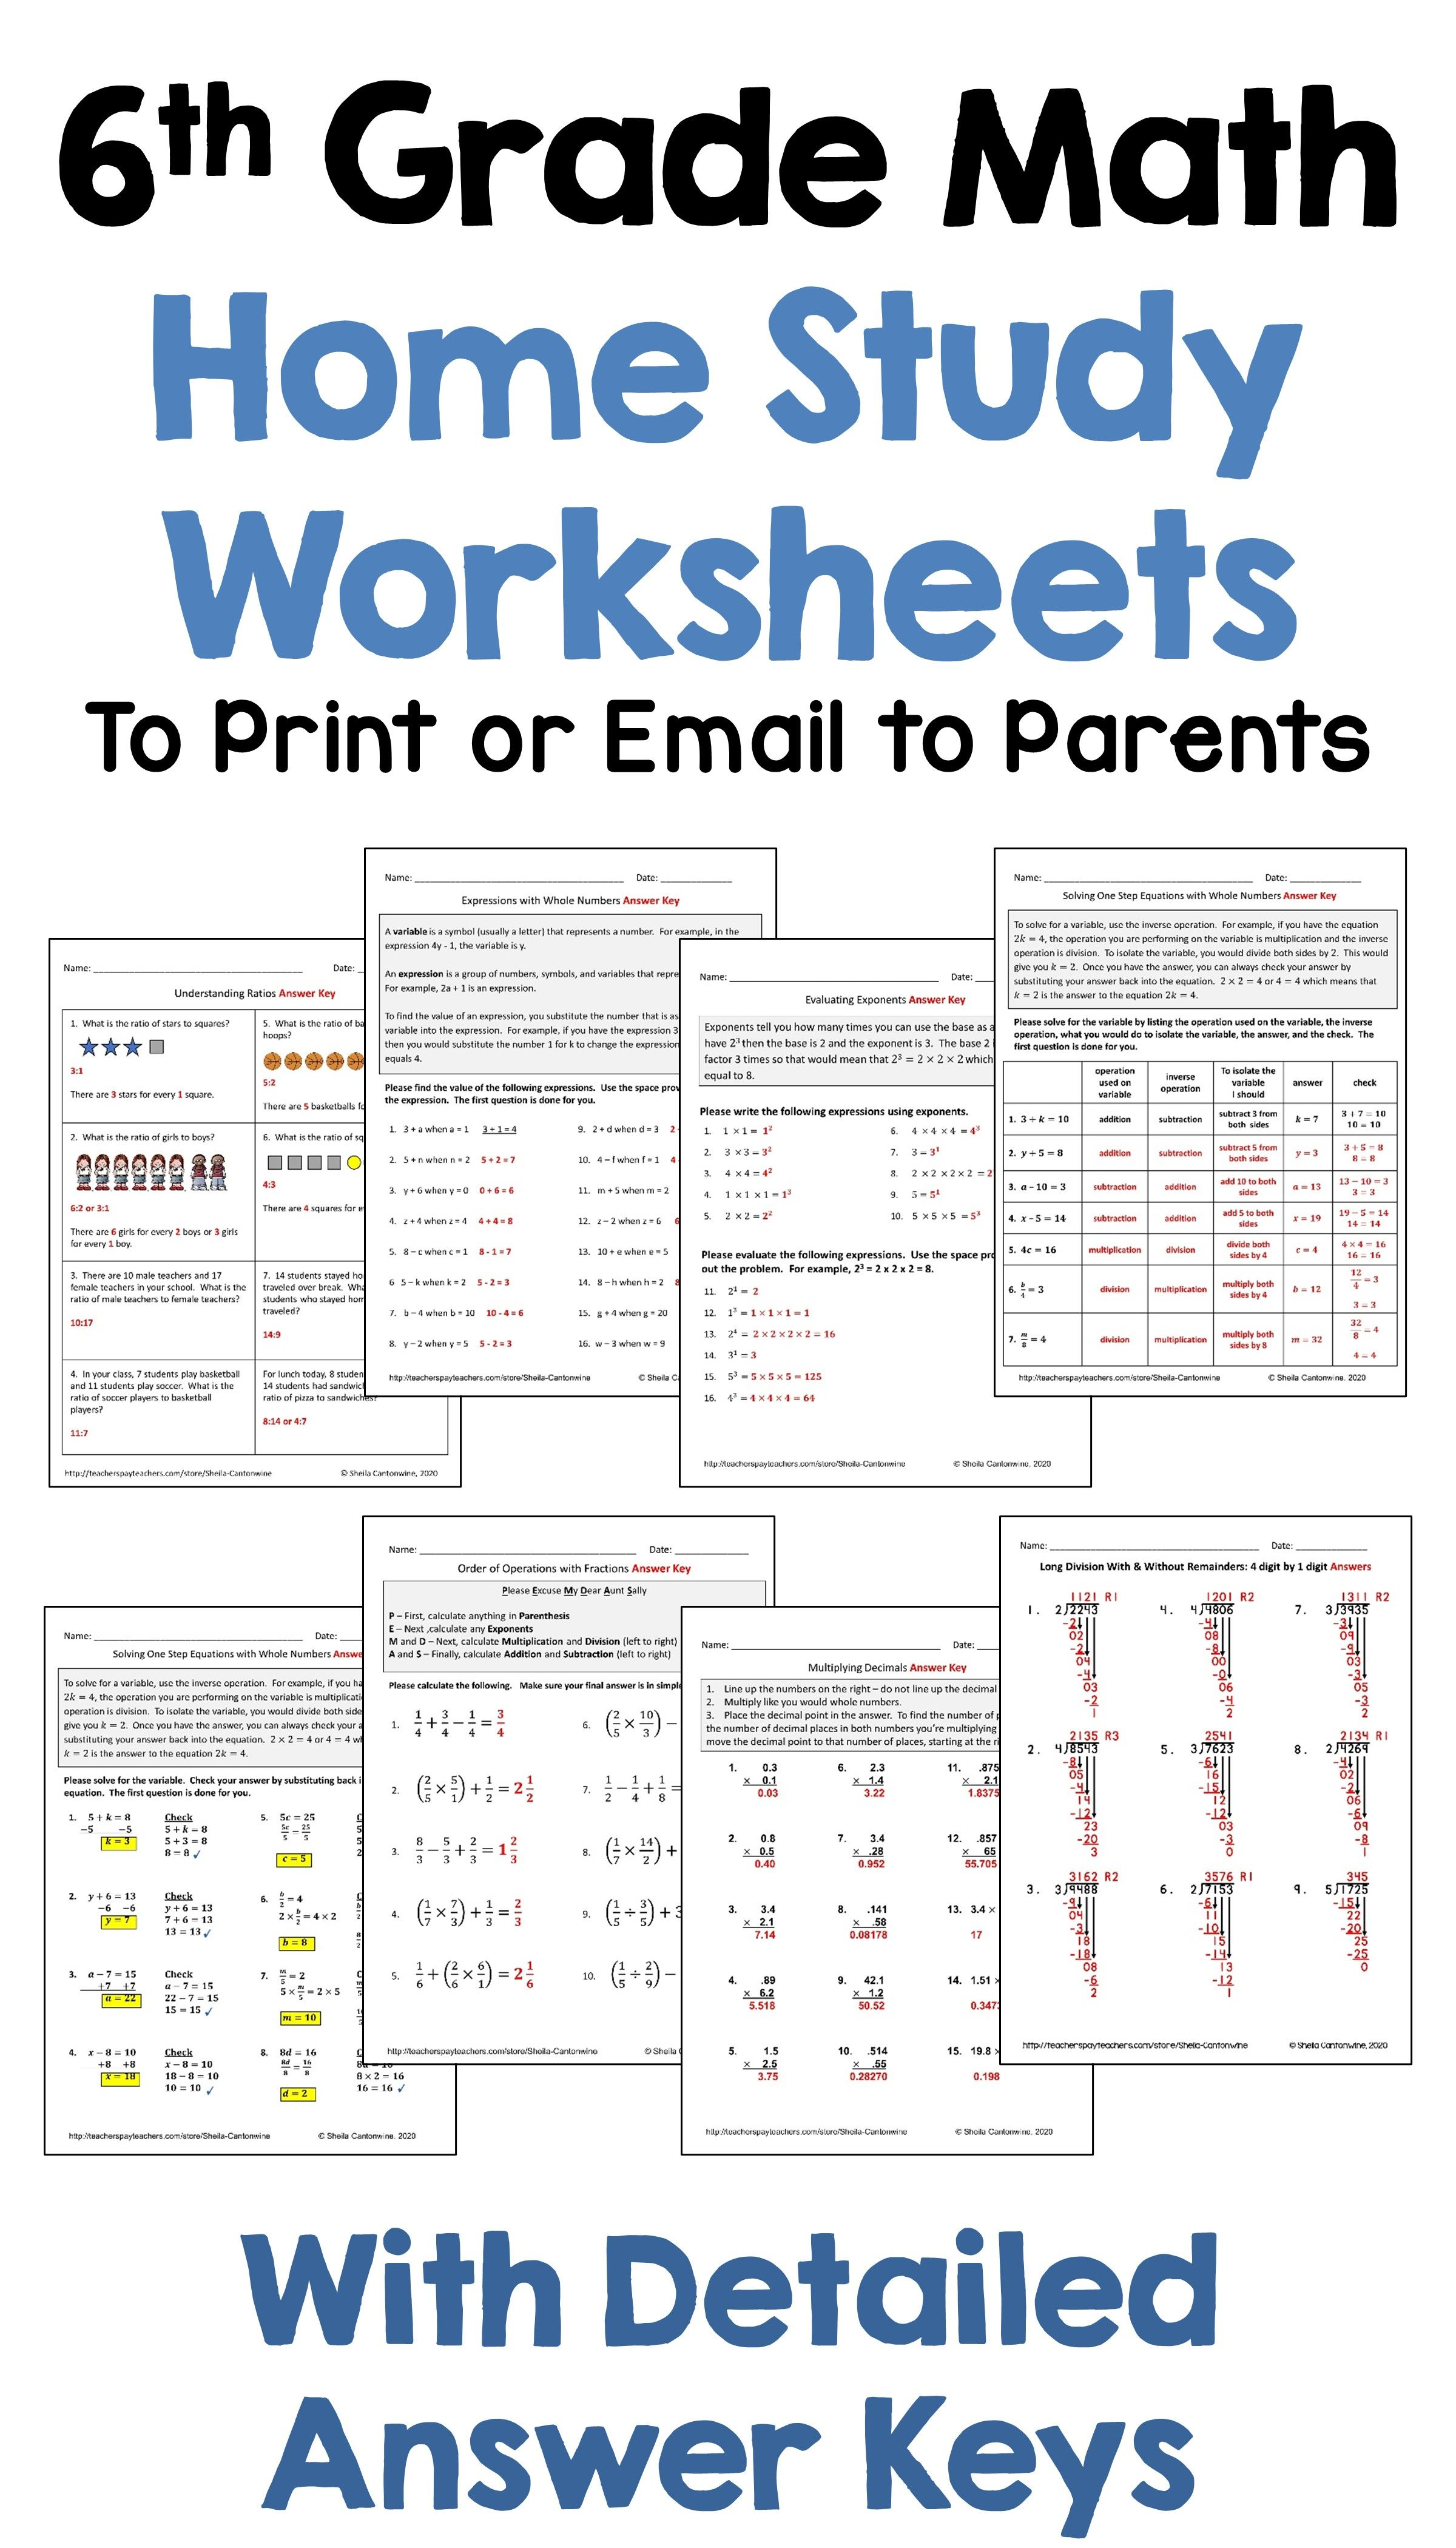 6th Grade Math Home Study Worksheets To Print Or Email To Parents In 2020 Math Word Problems Evaluating Algebraic Expressions